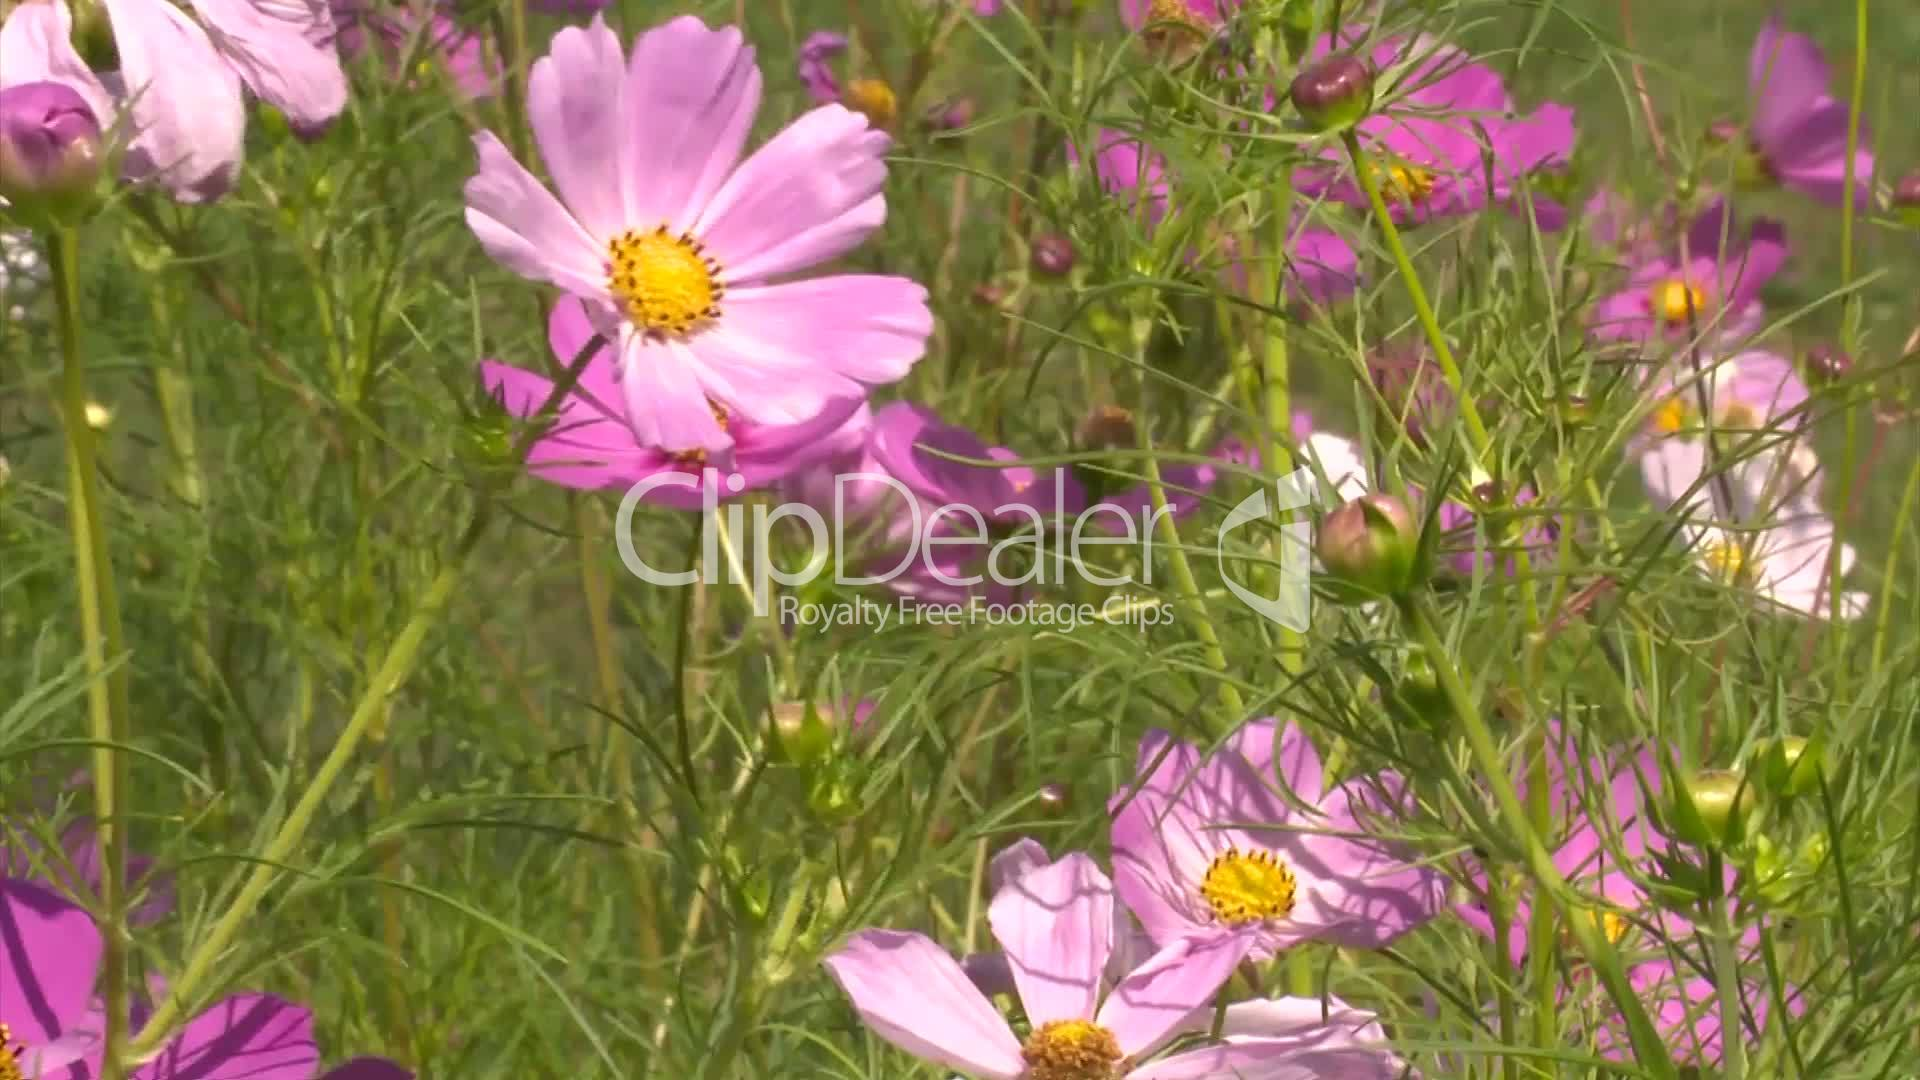 Pinke Blumen Pinke Rosa Blumen Cosmea Royalty Free Video And Stock Footage